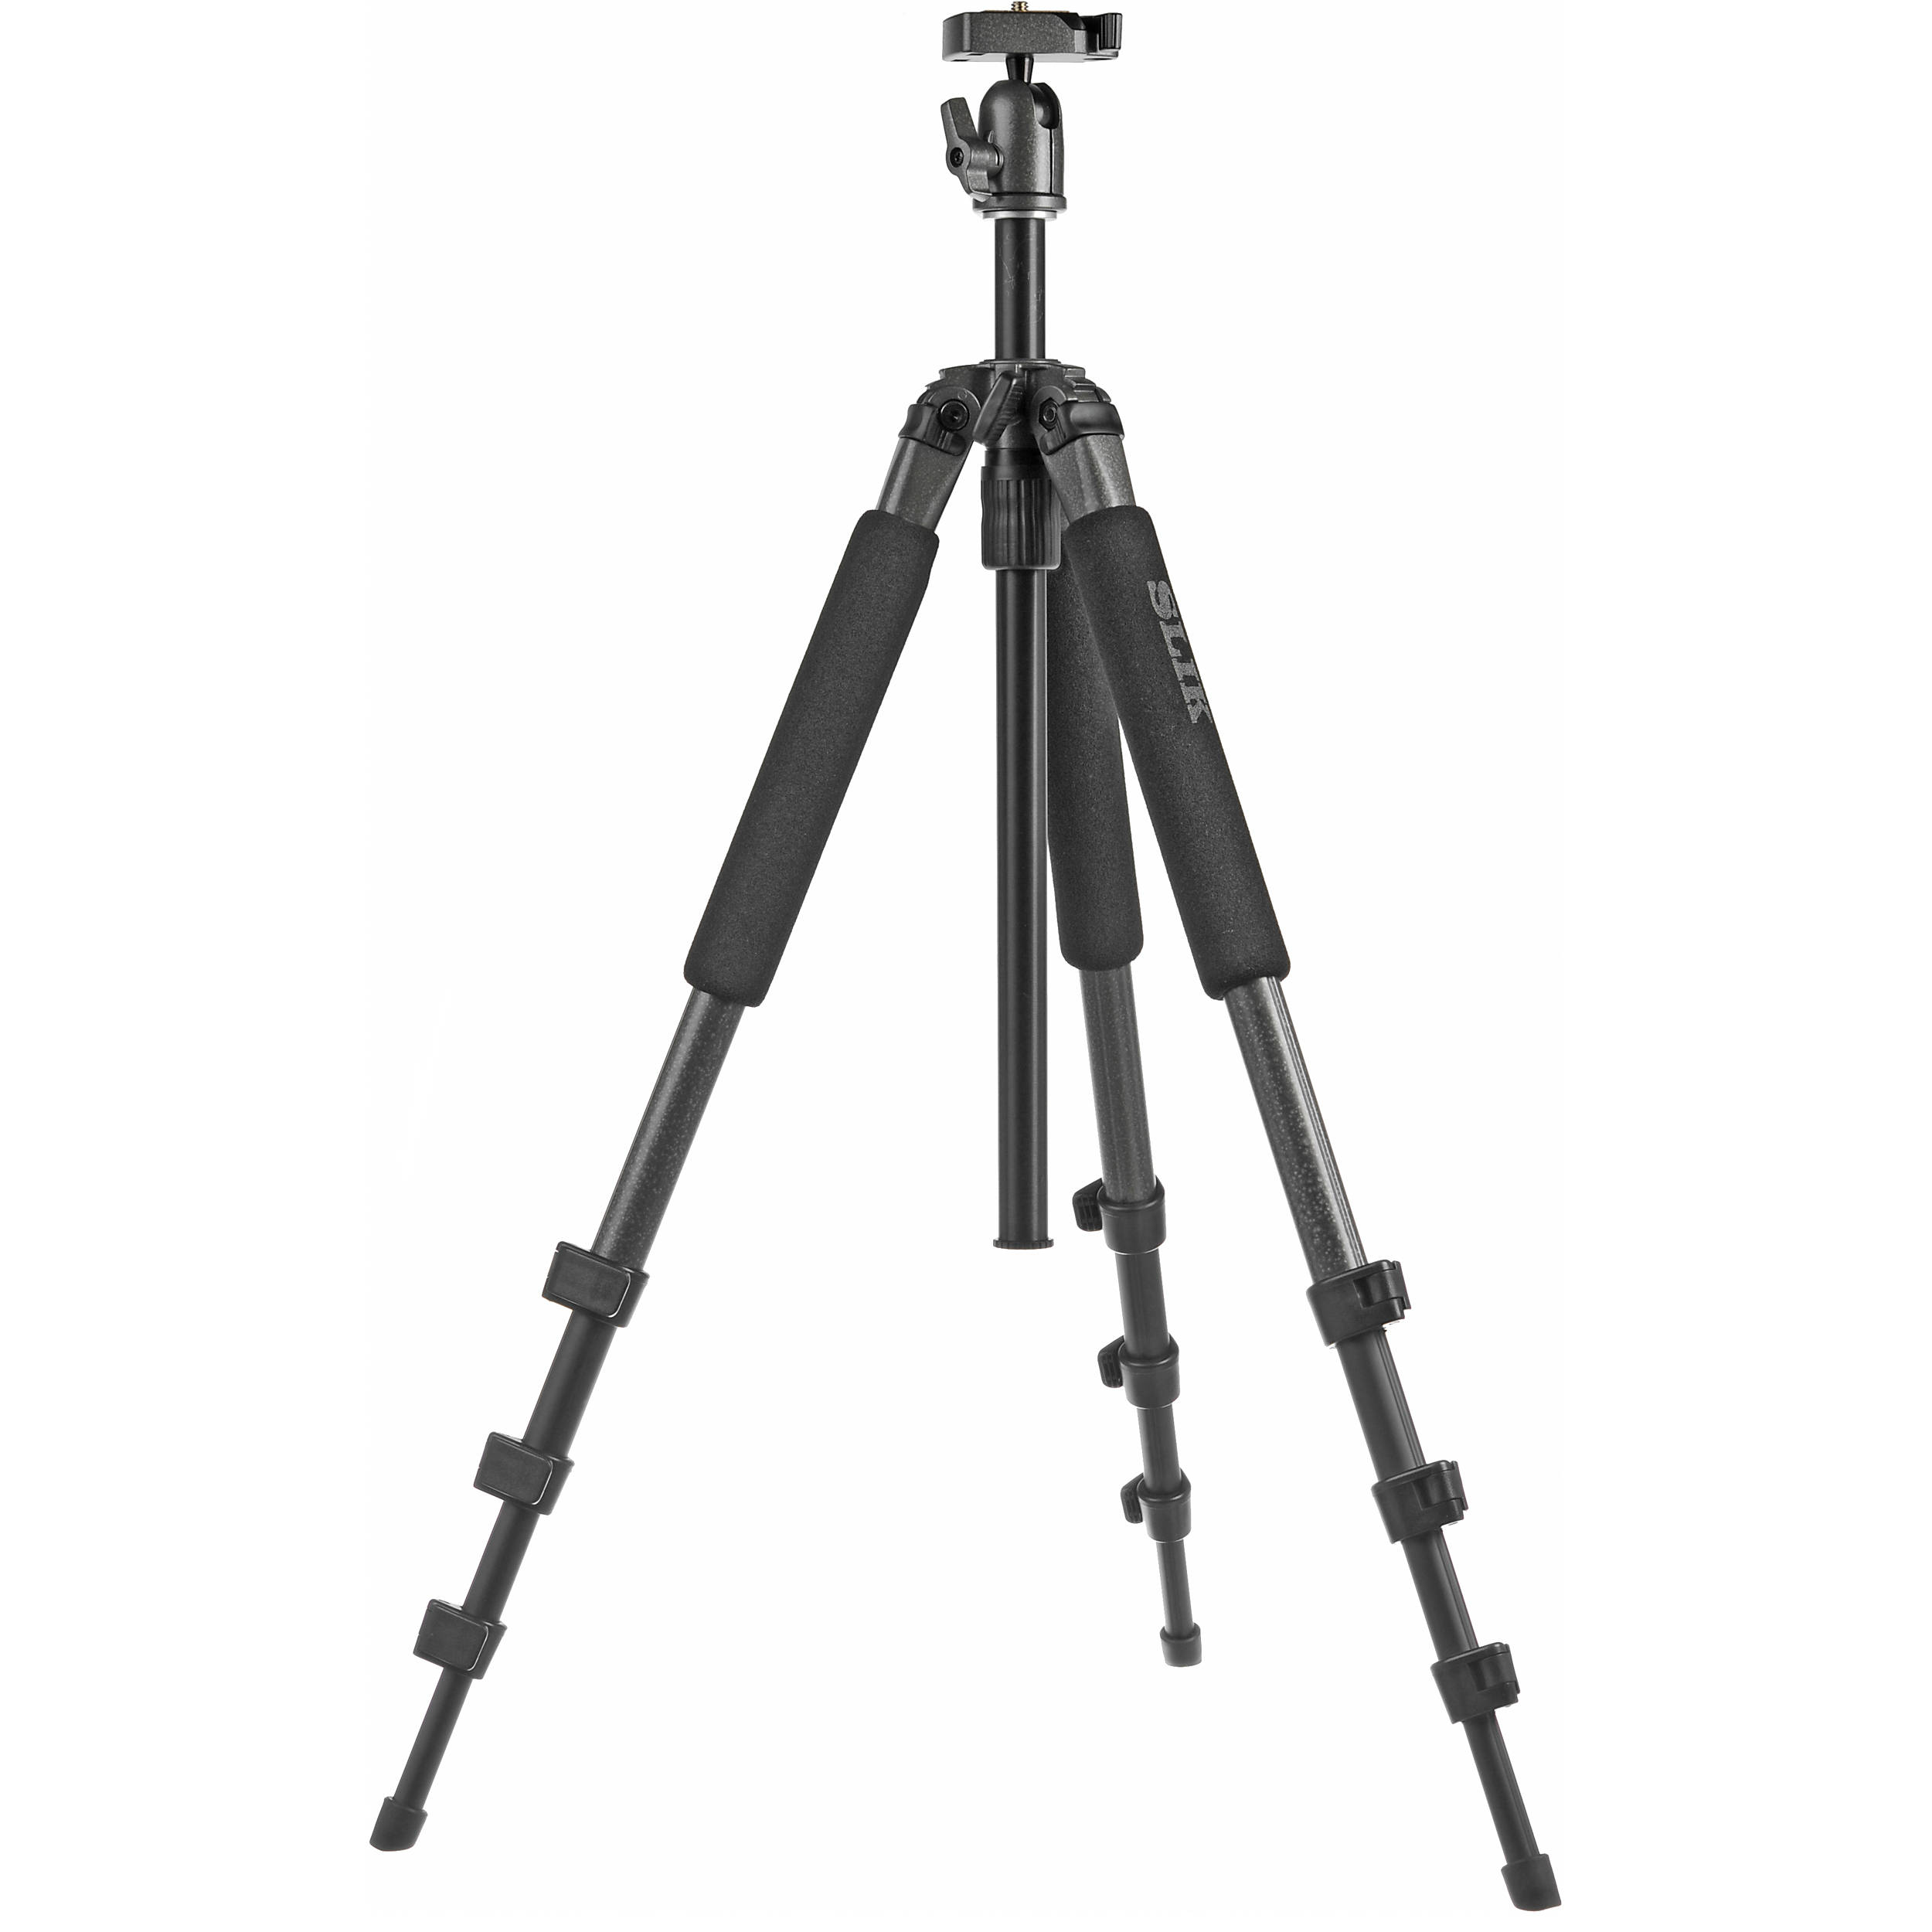 SLIK Sprint Pro II Tripod - the tripod I use for travel photography and some food photography